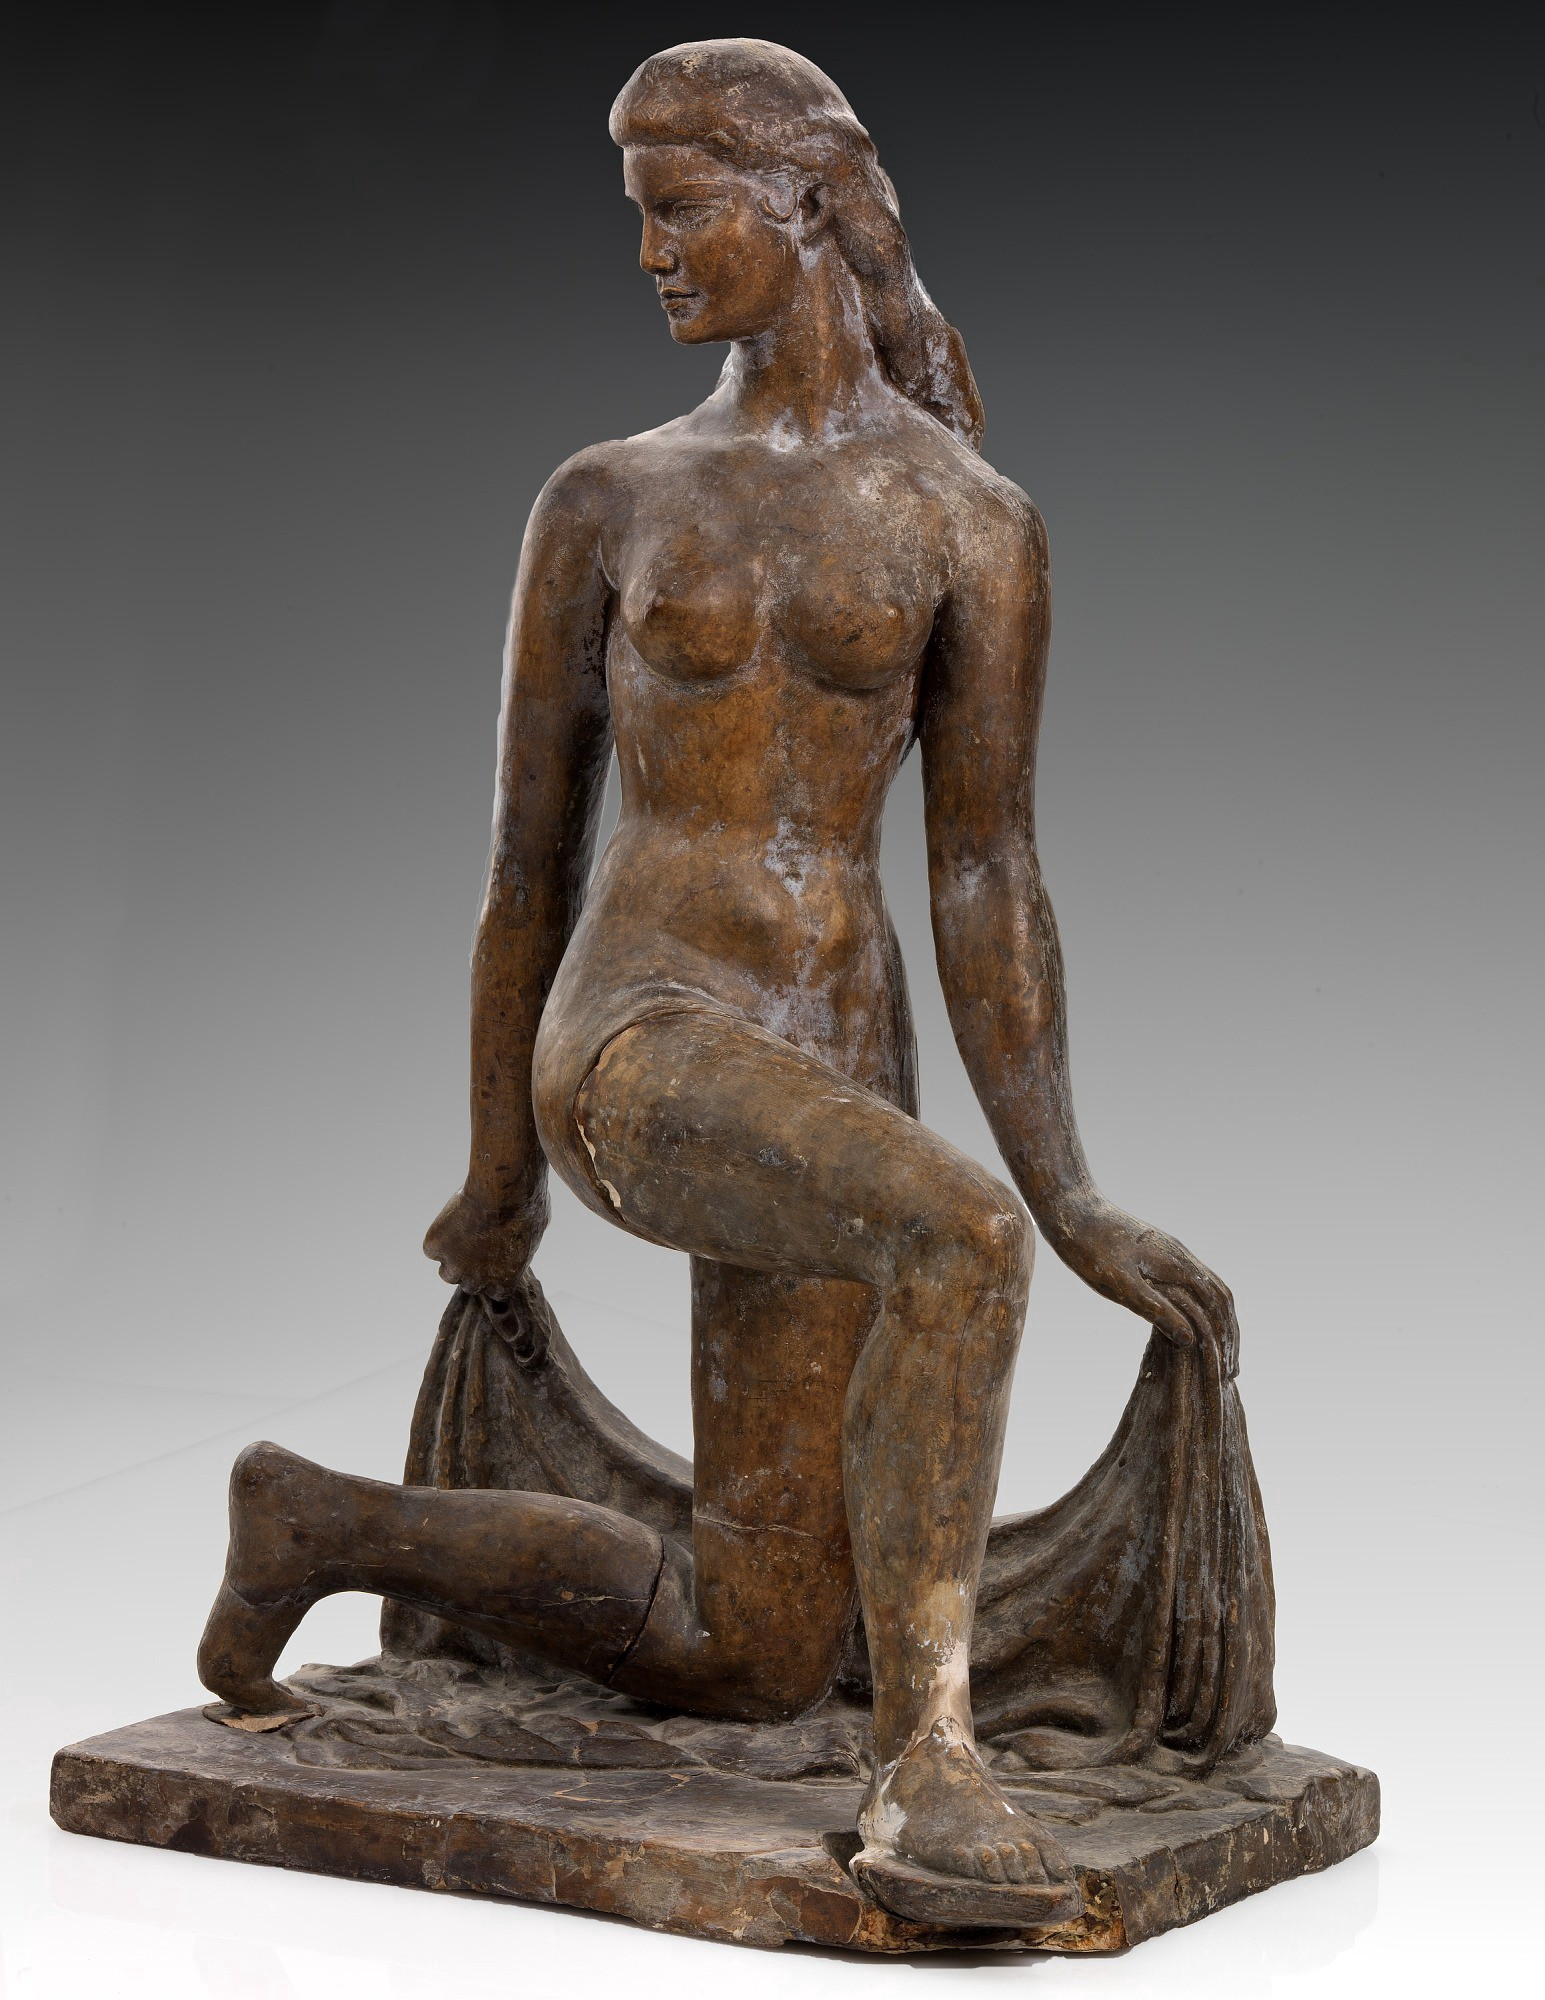 Spirit of the Dance (plaster study) by William Zorach, via the Smithsonian American Art Museum.